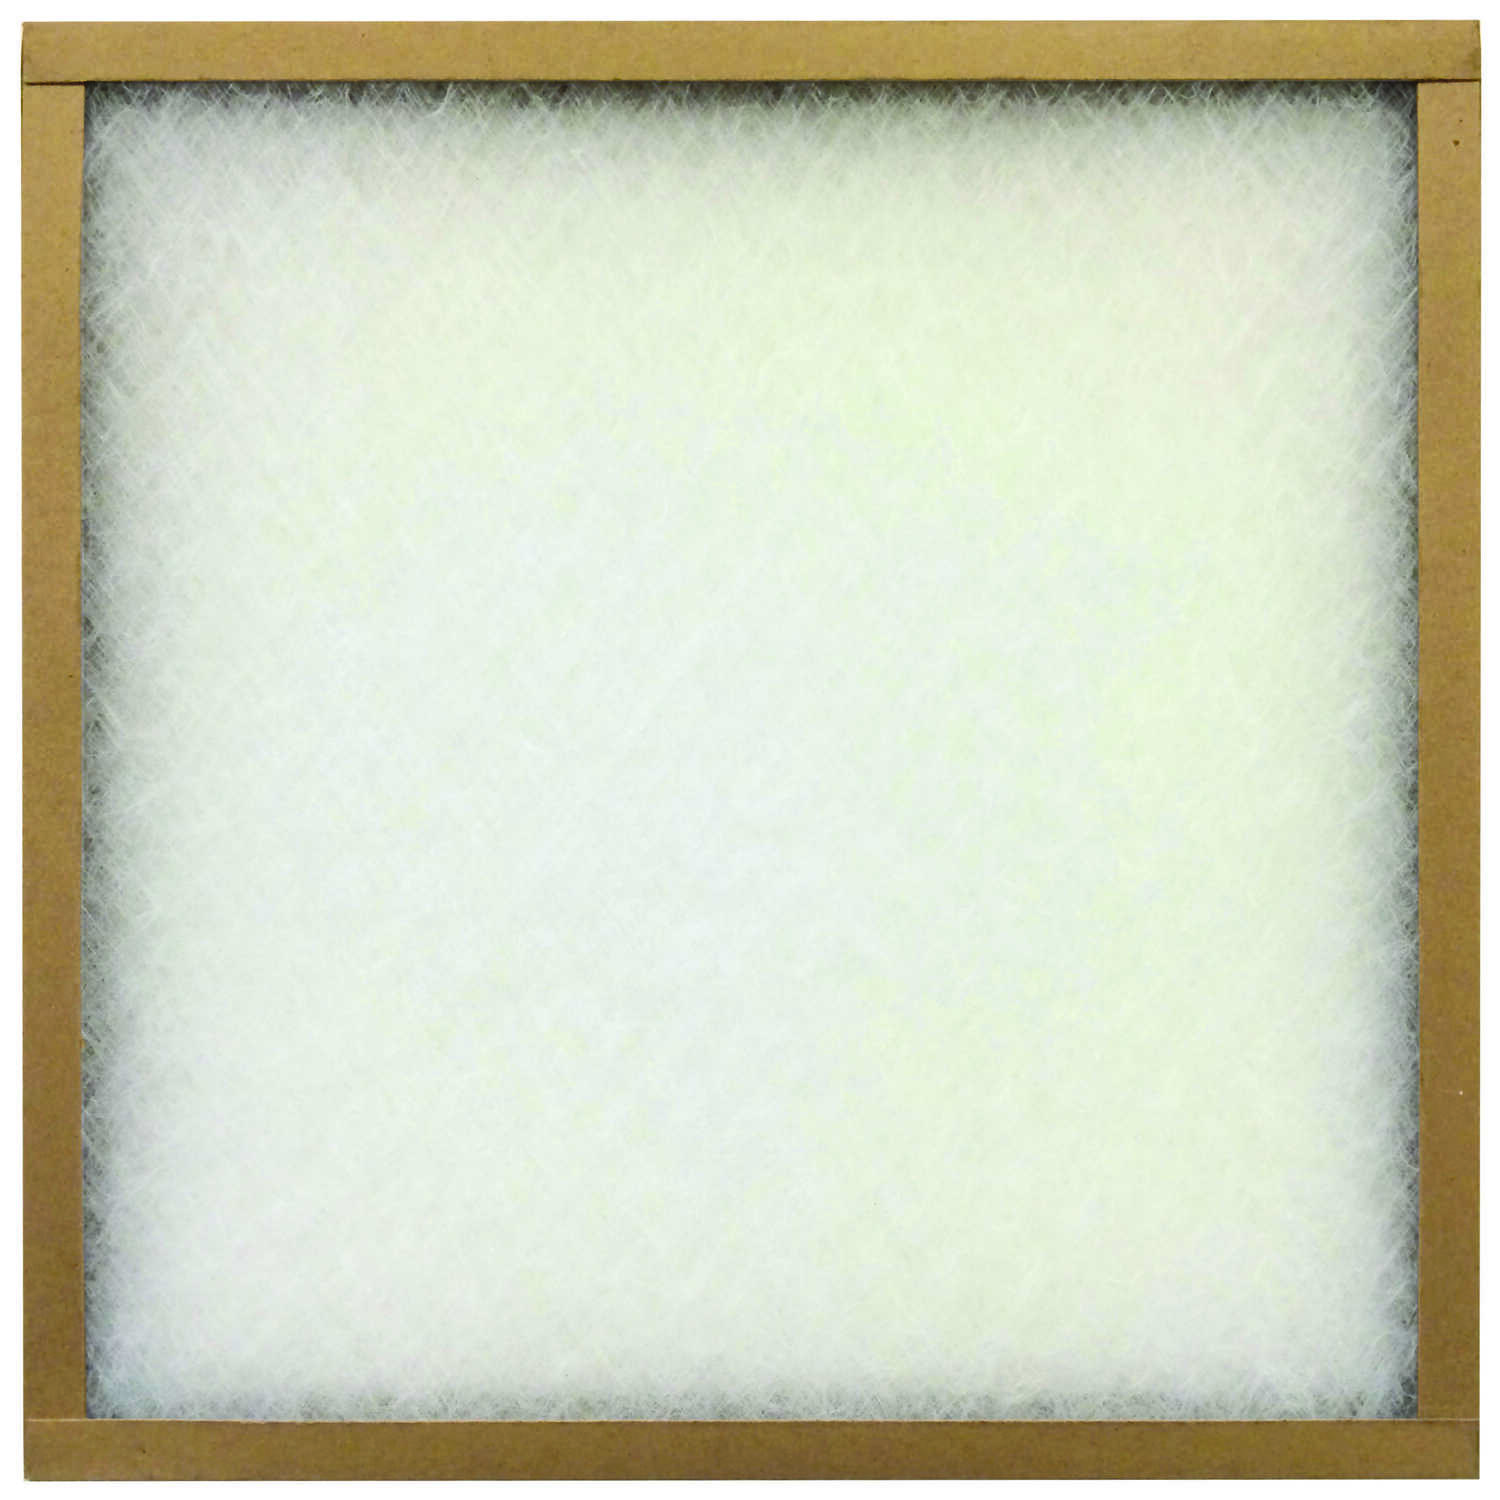 AAF Flanders  8 in. W x 16 in. H x 1 in. D Fiberglass  Air Filter